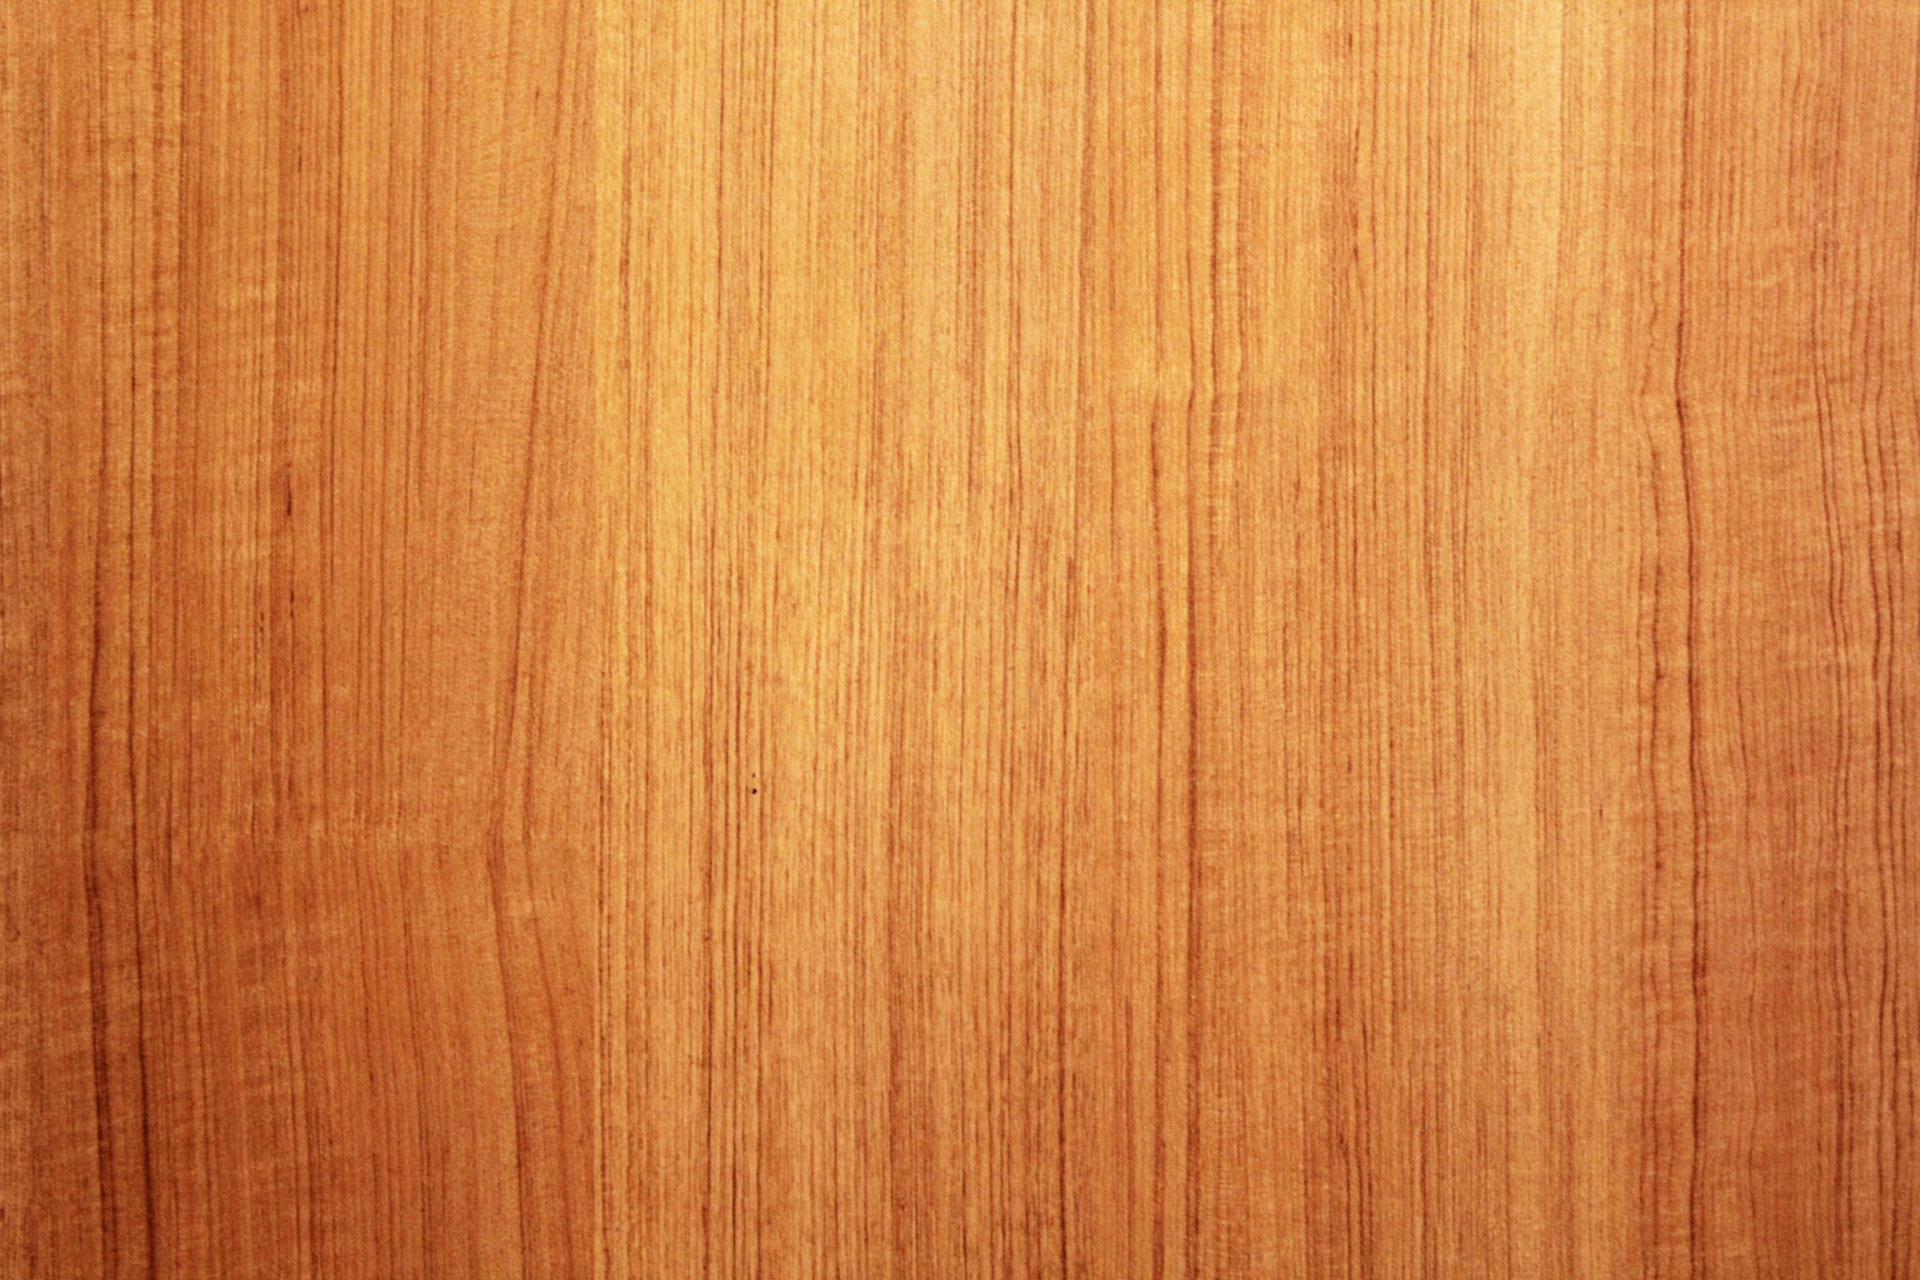 Wood Background 02 Free Stock Photo - Public Domain Pictures